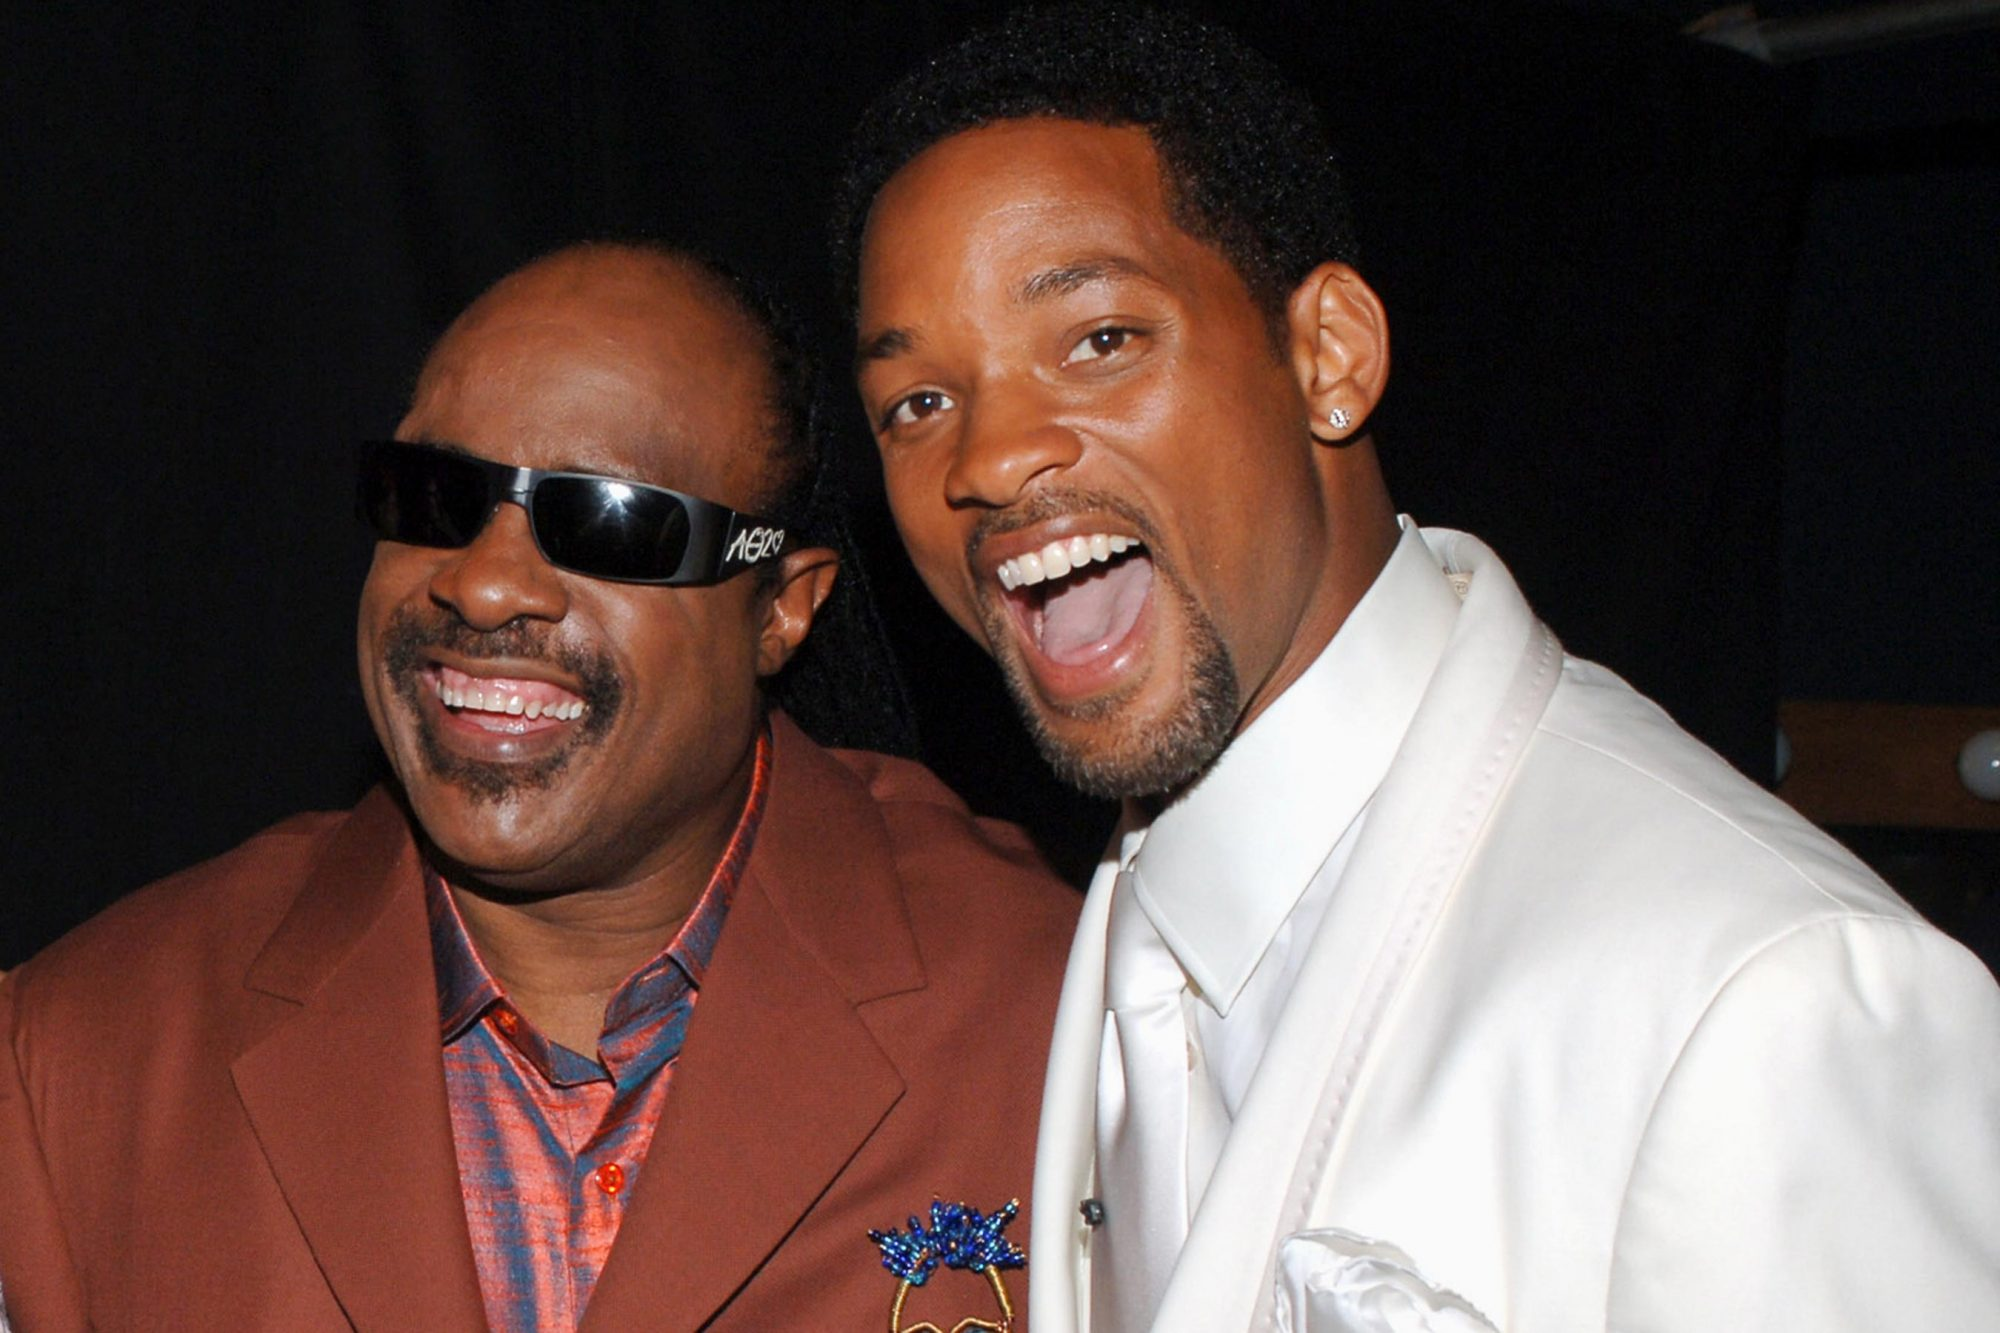 Stevie Wonder and Will Smith